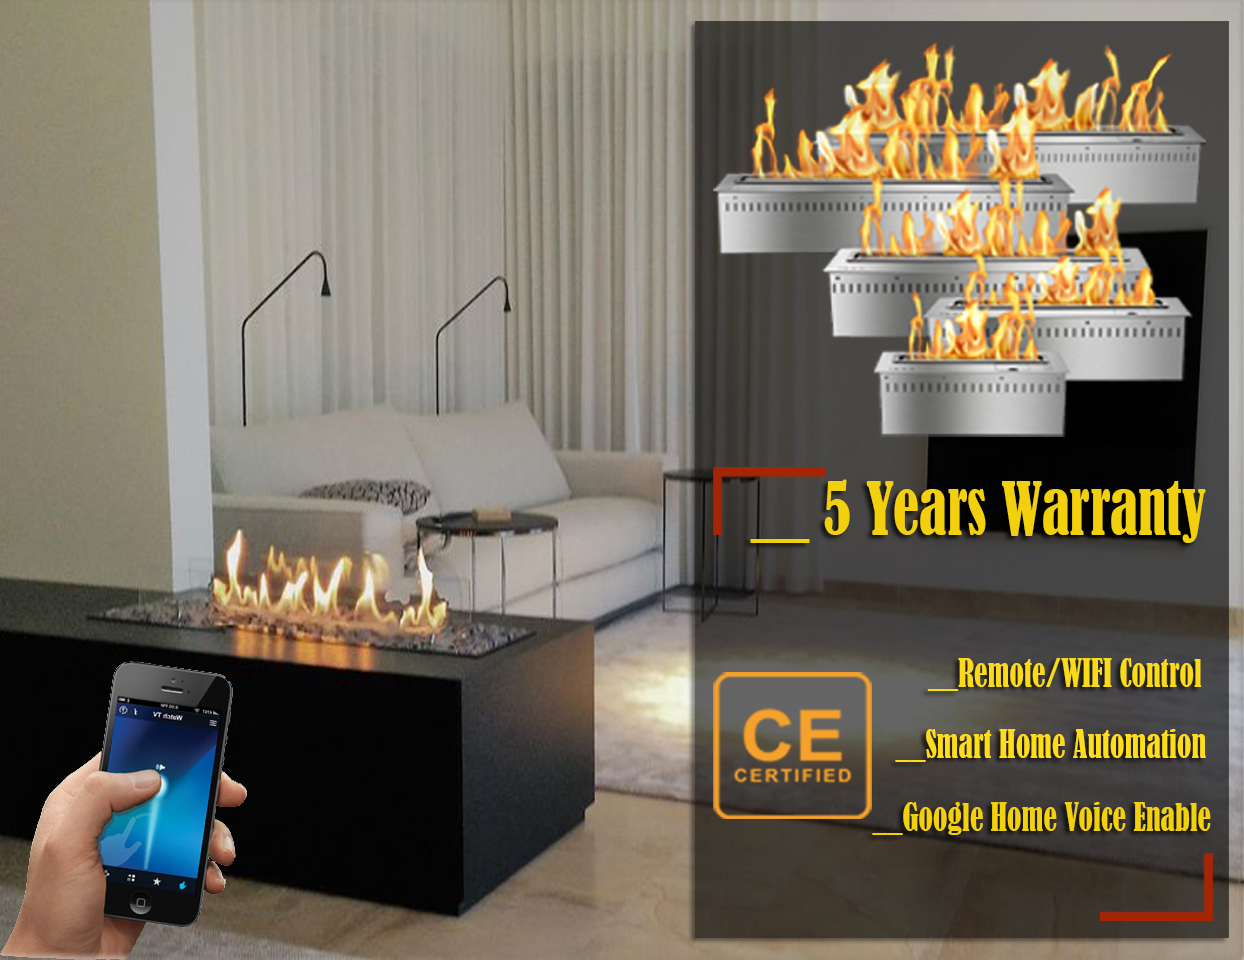 Hot Sale 36 Inches Indoor Ventless Chimney Ethanol Burner Insert Modern Fireplace